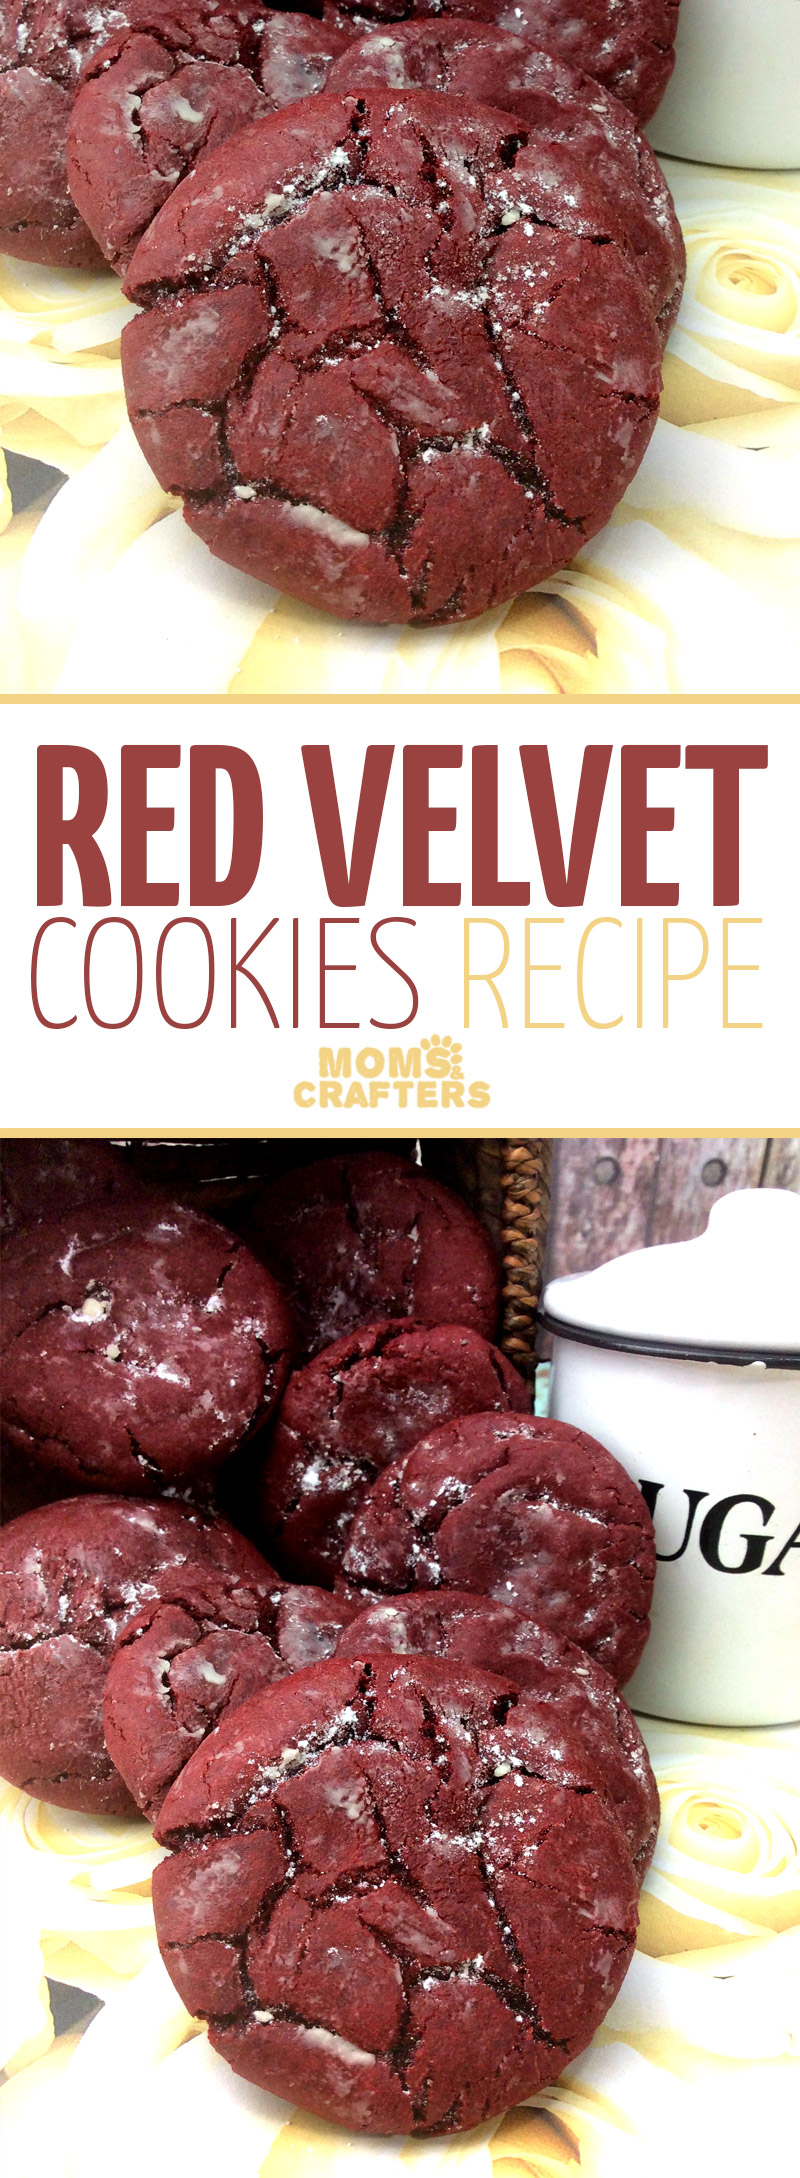 These delicious red velvet cookies are totally a comfort food! Try out this easy dessert recipe to serve with a side of vanilla ice cream, or to dip into your coffee